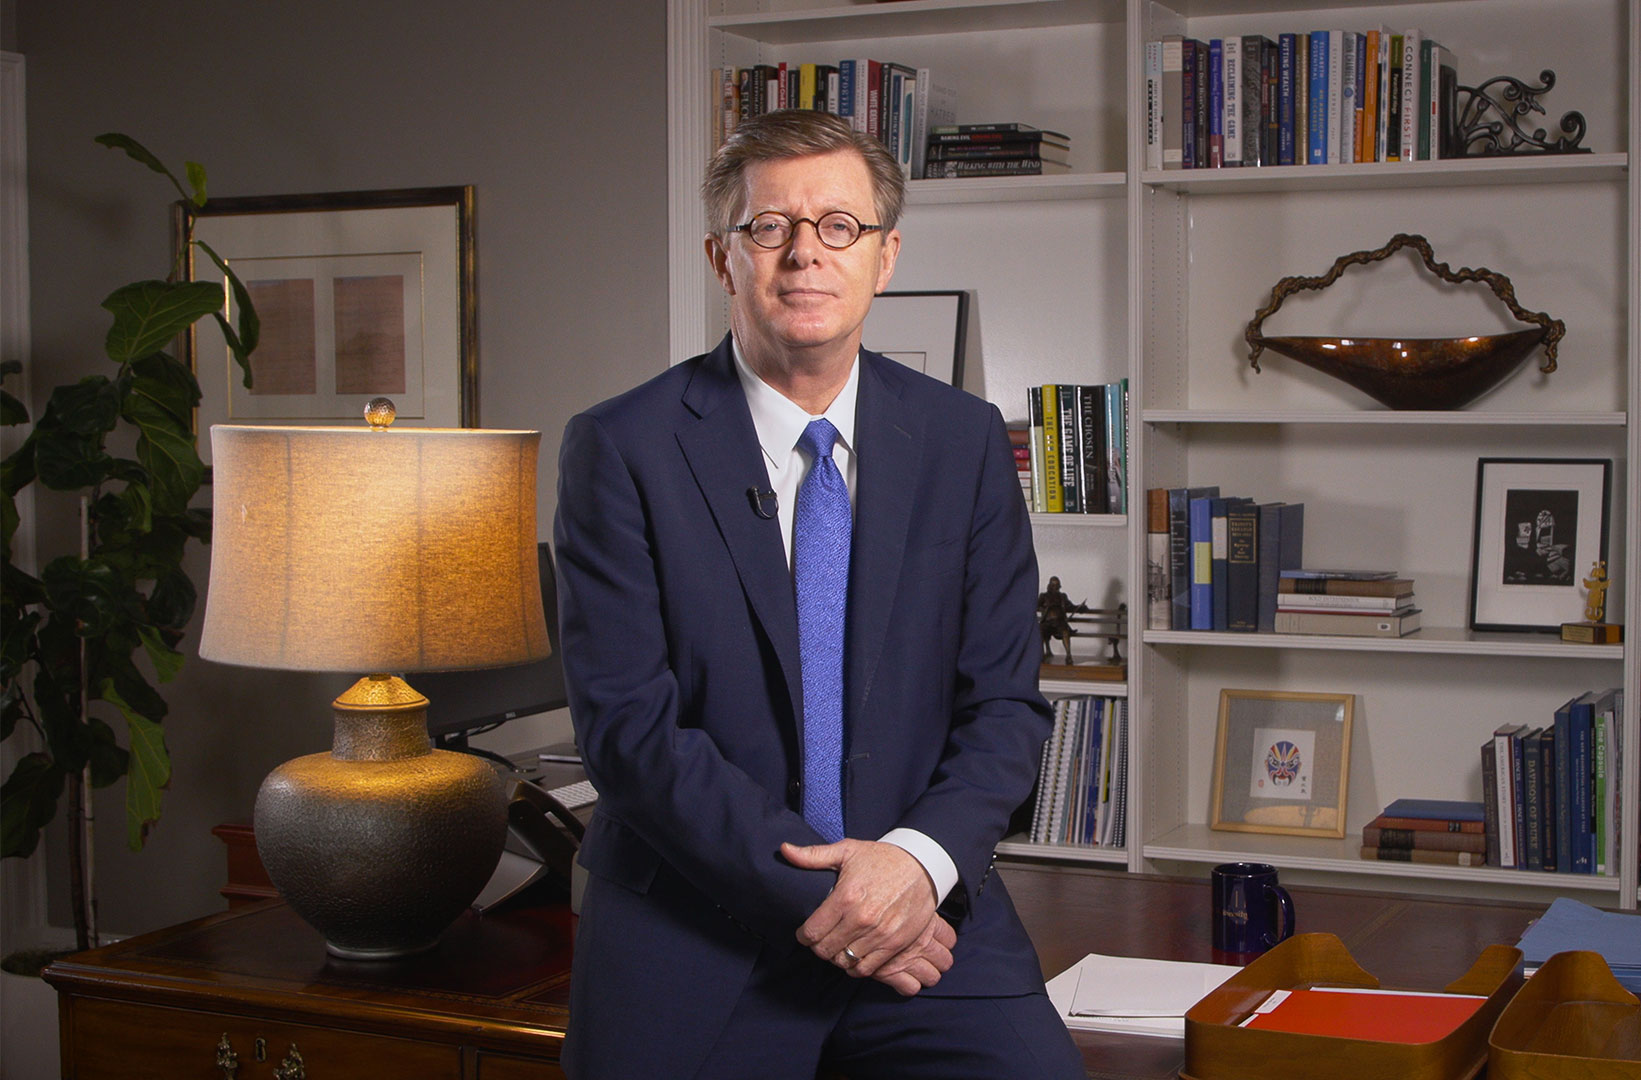 President Price in his office